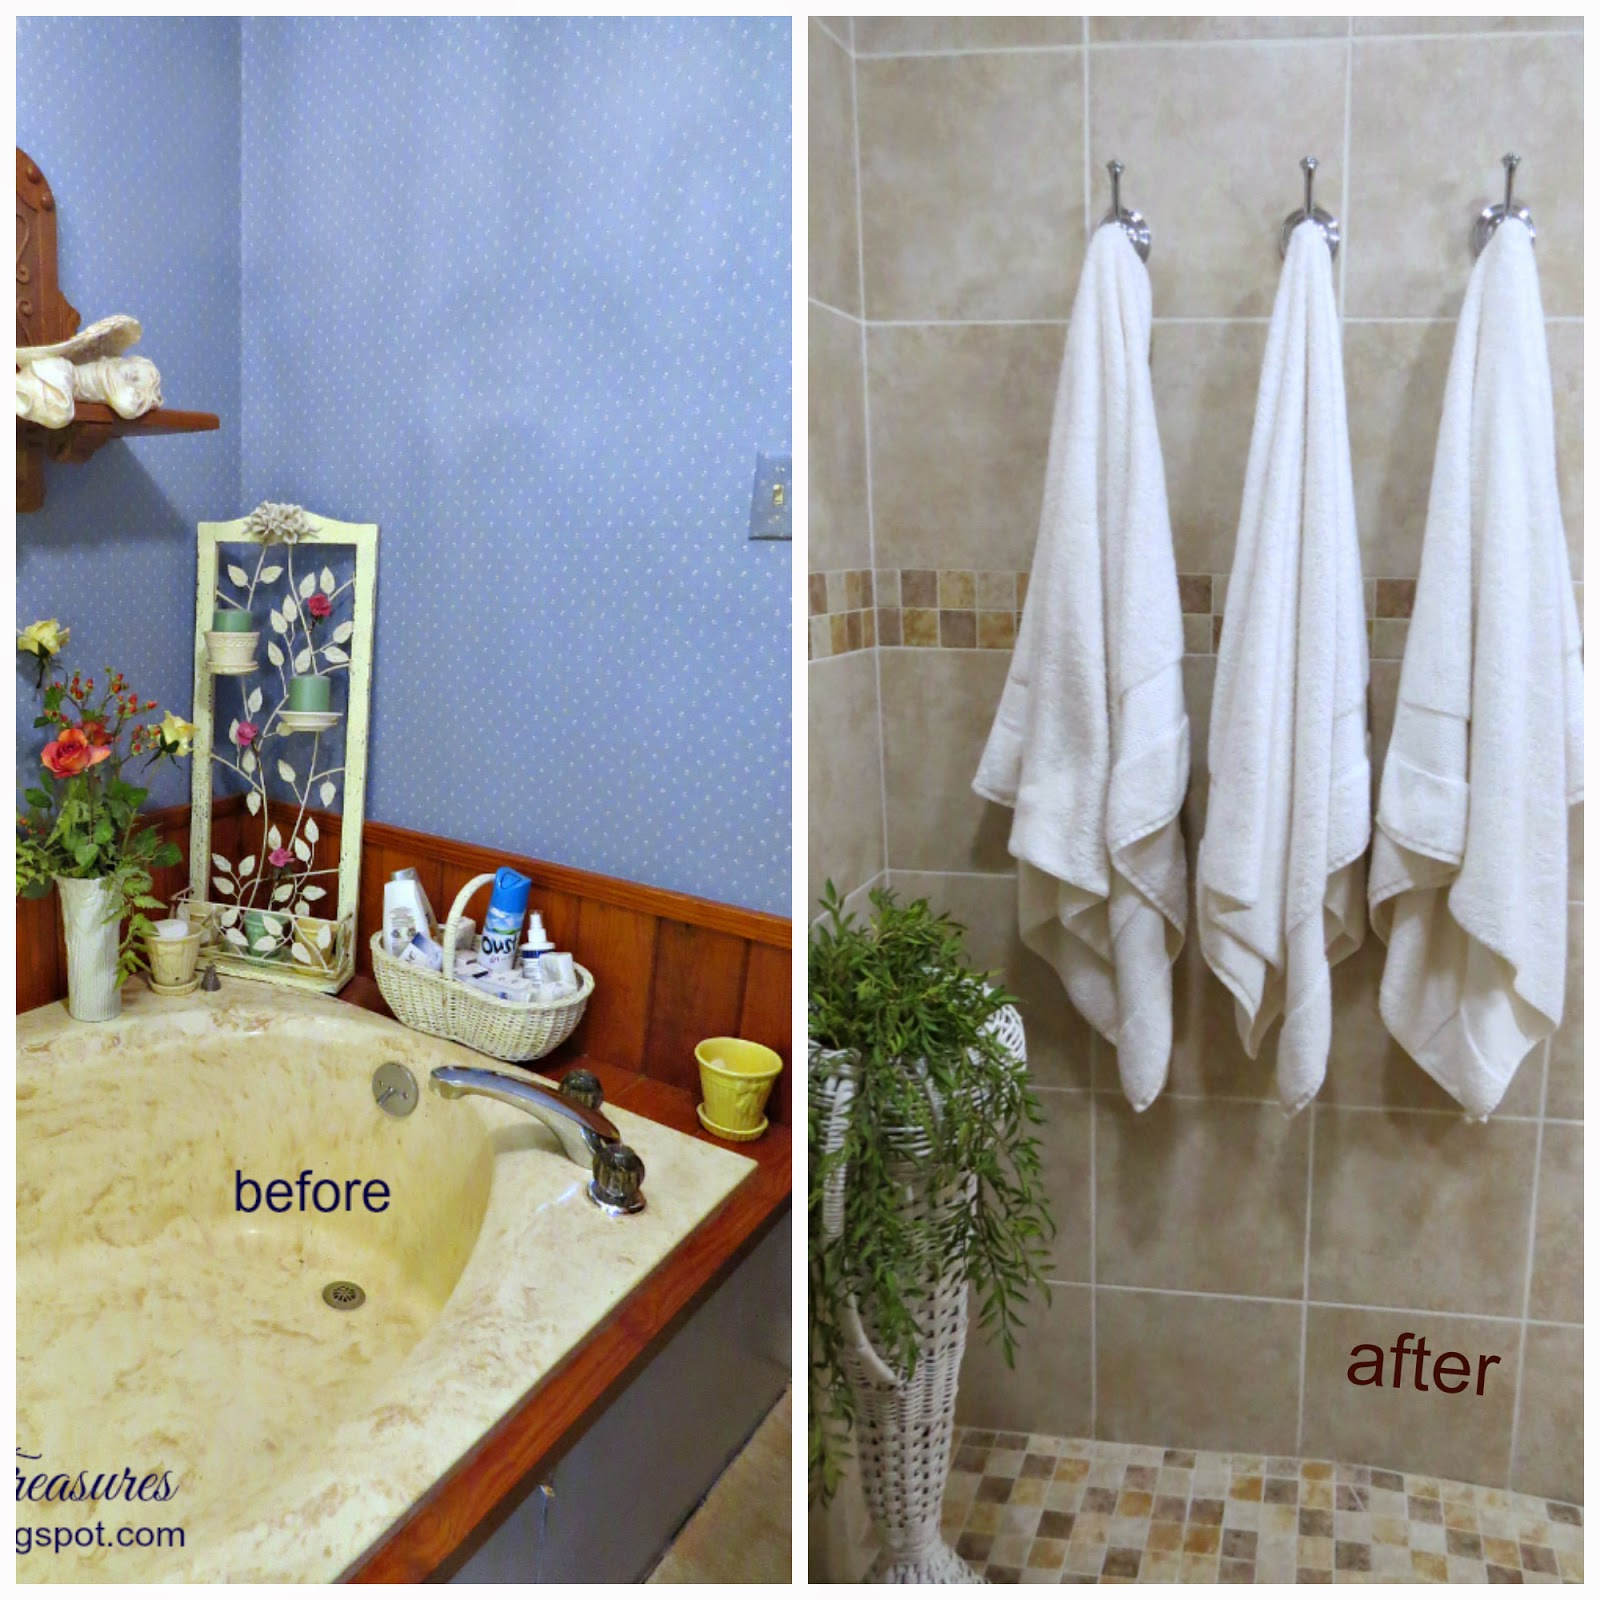 Timeless Treasures: Master bath remodel before and after.Part 1.